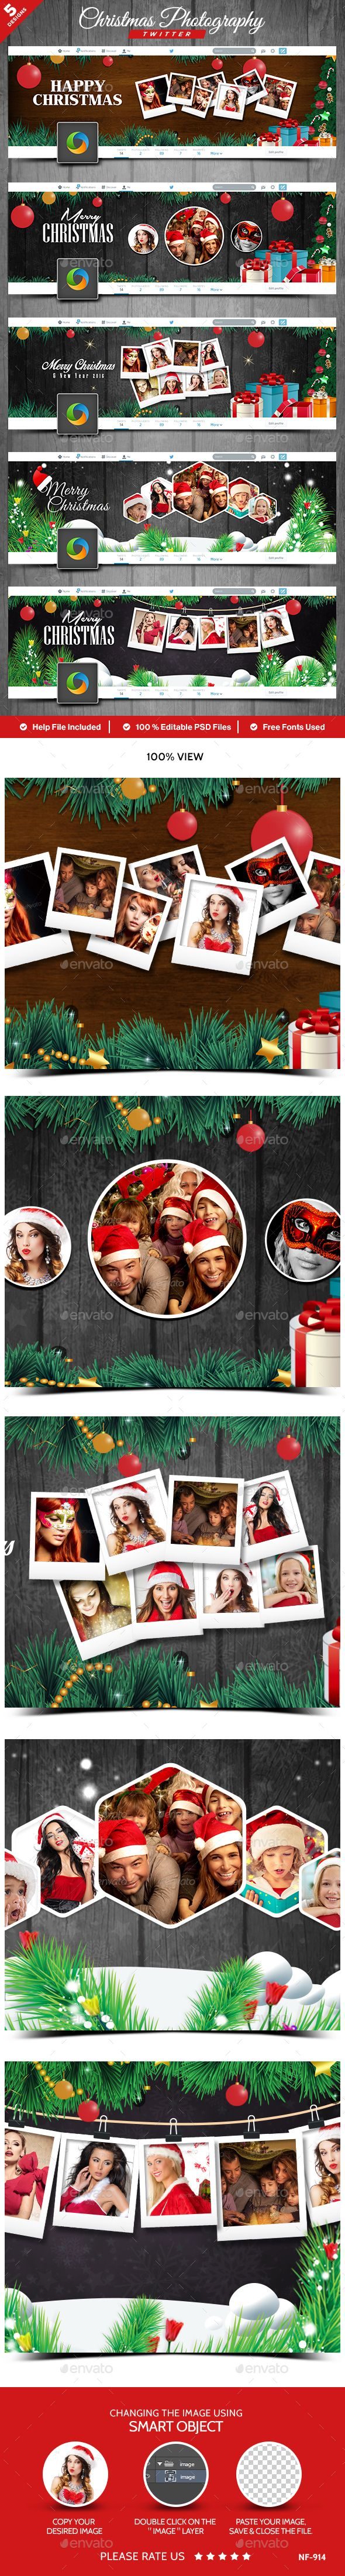 Christmas Photography Twitter Headers - 5 Designs